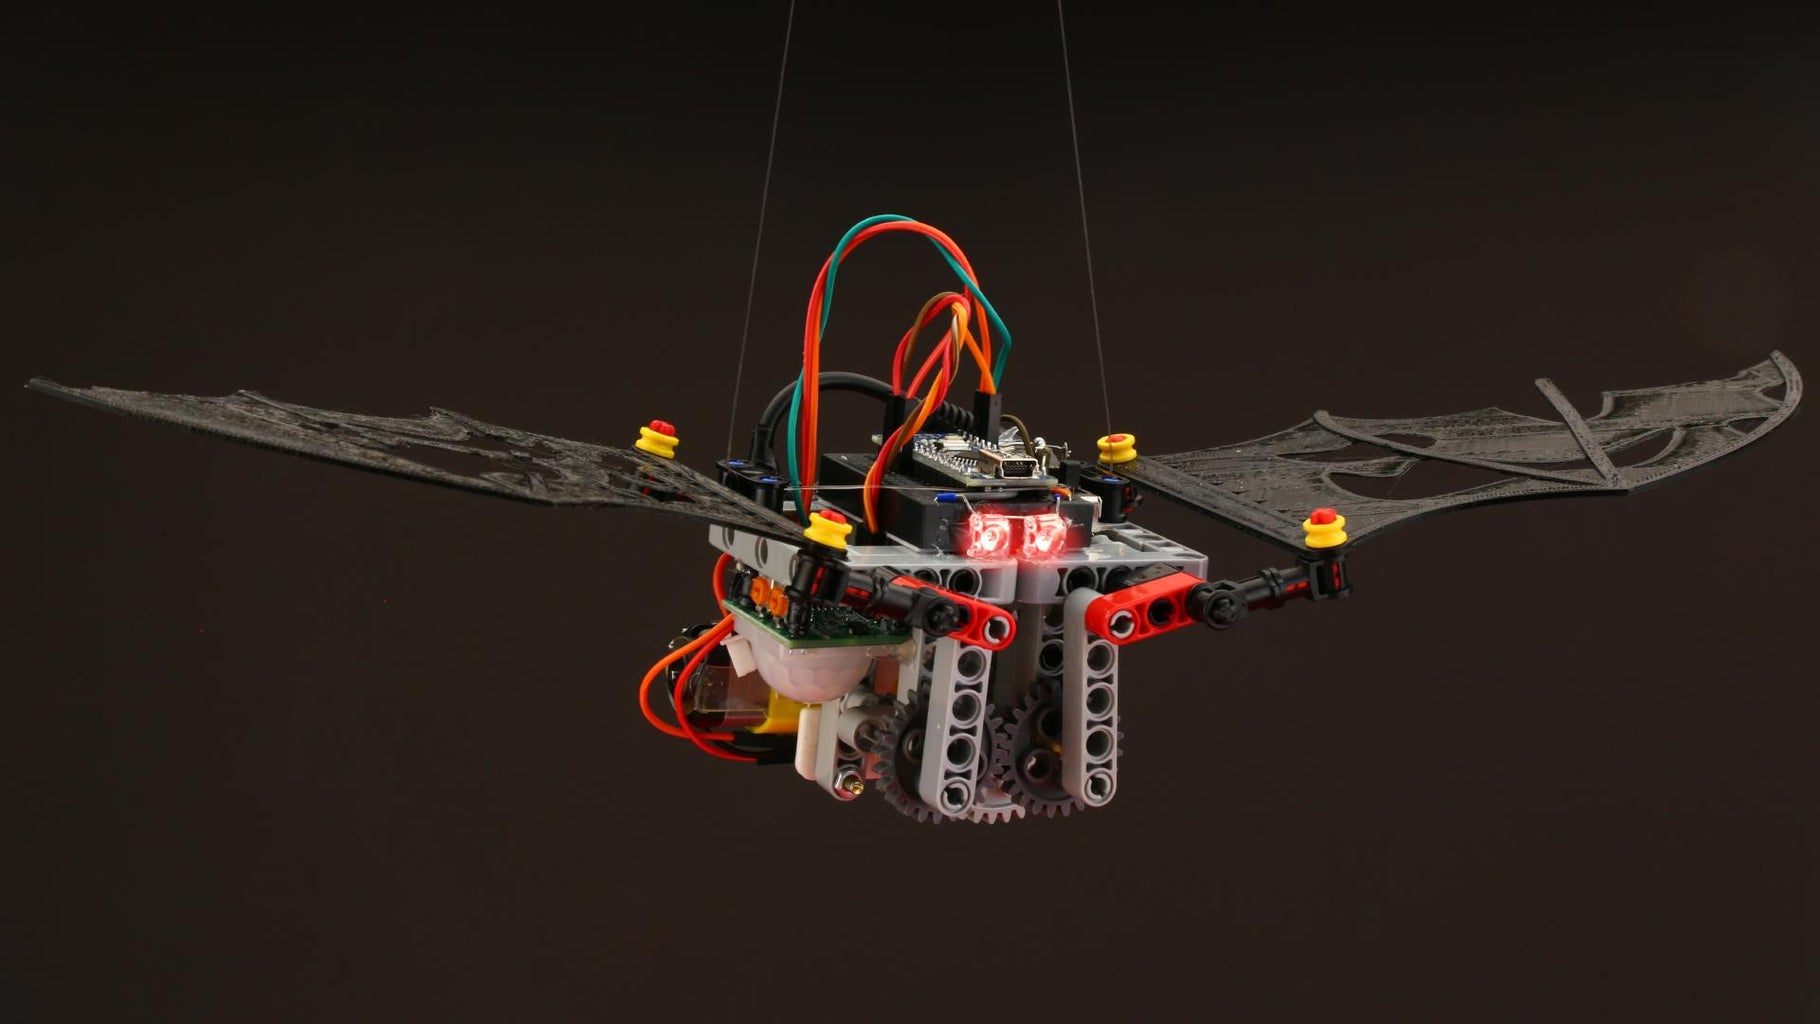 The Red LEDs of the Robotic Bat